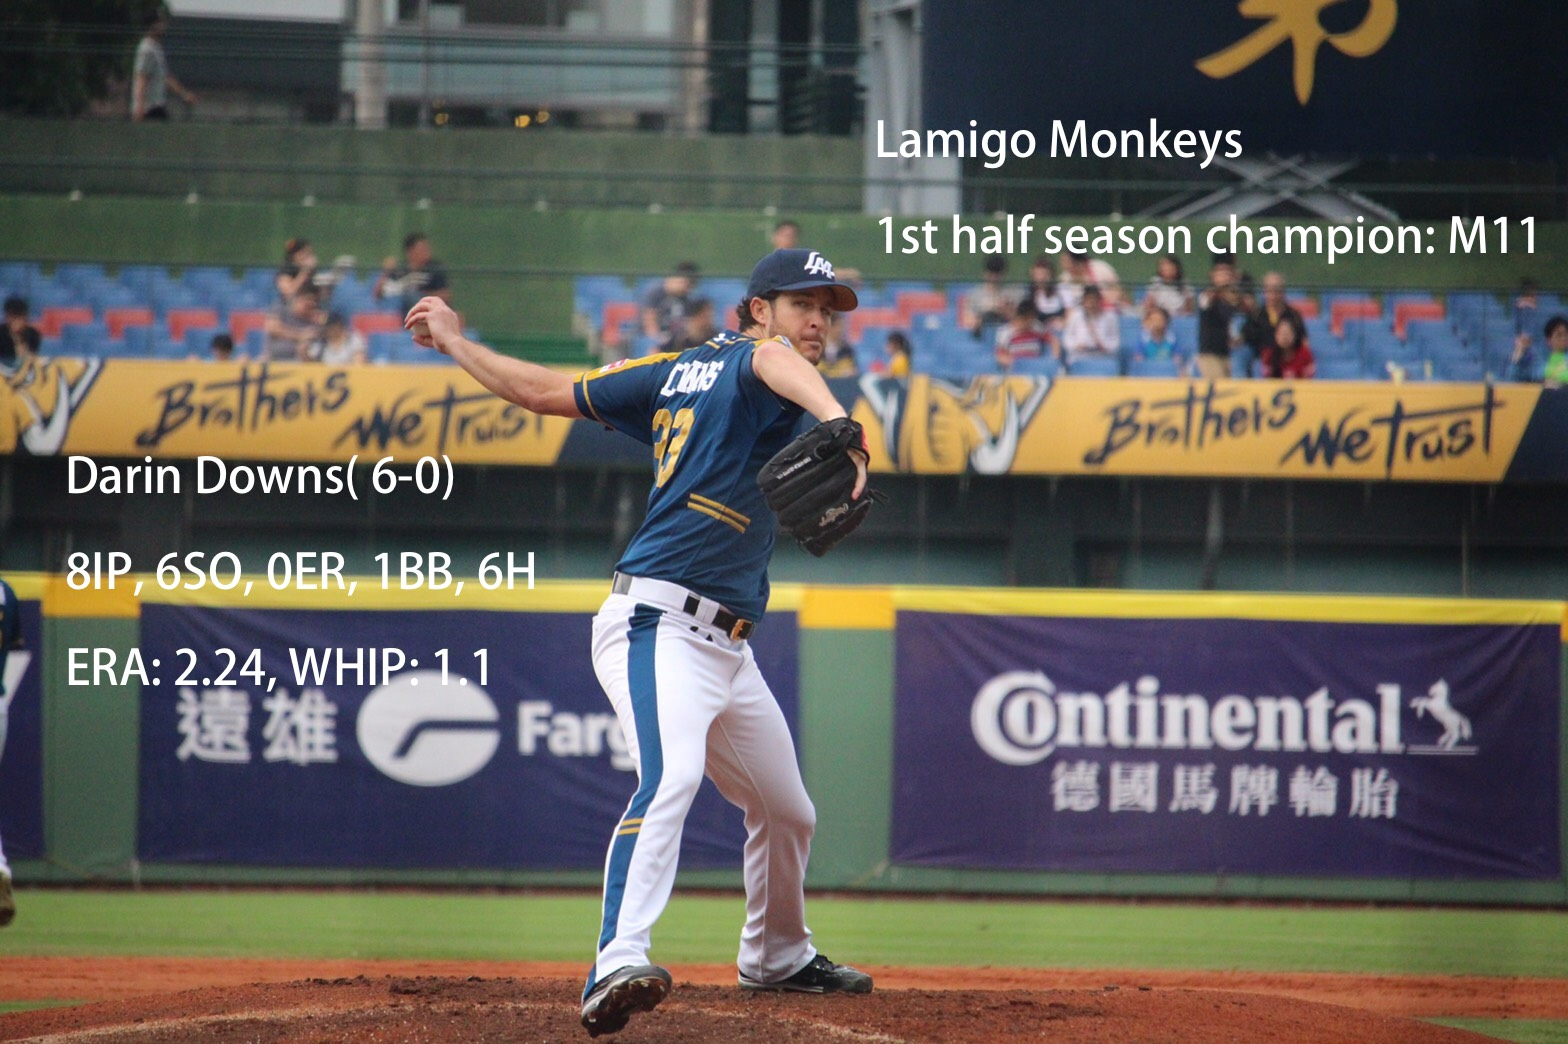 Downs' magnificent outing, 8 scoreless innings with 6SO lights Monkeys magic number. Photo credit: (薛薛)